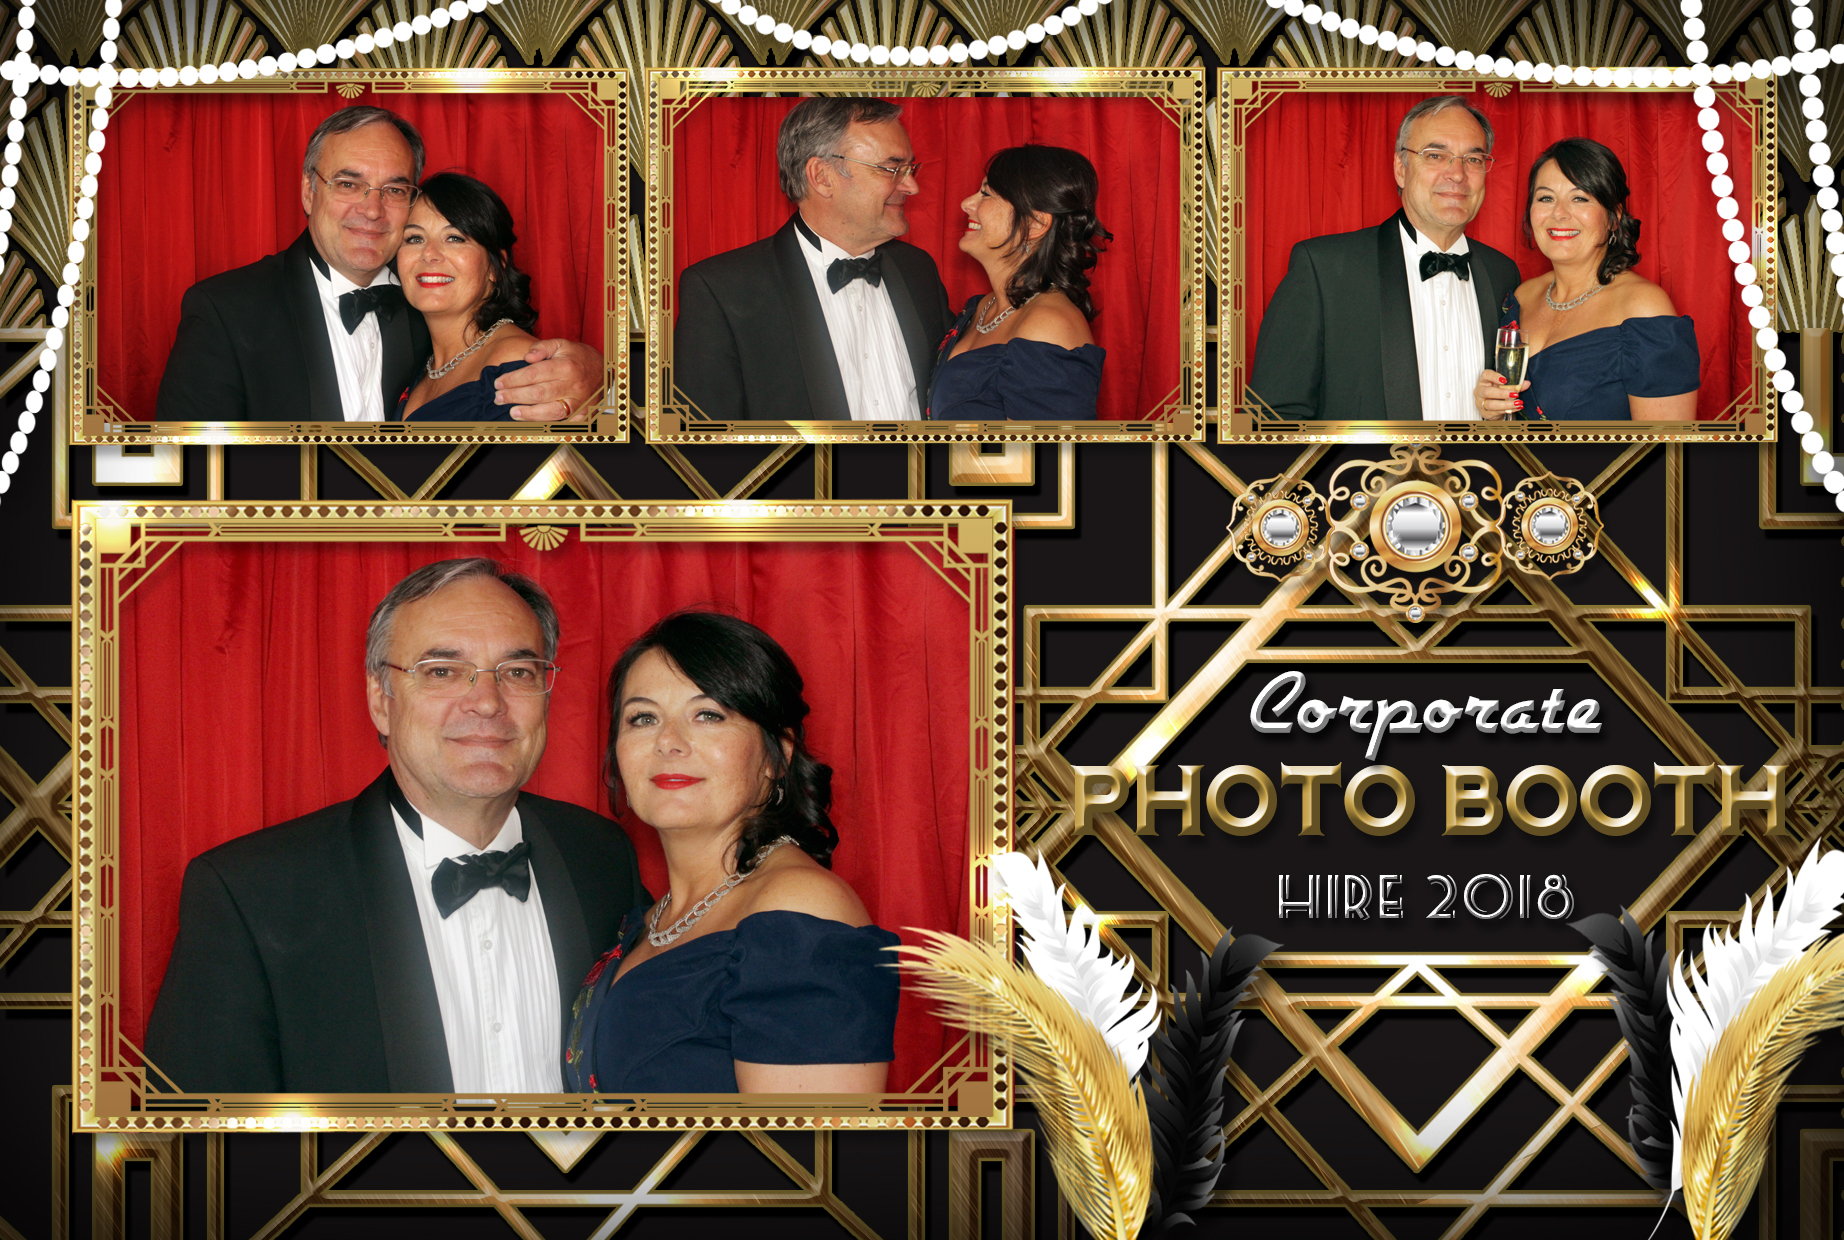 Gatsby Photo Booth Hire